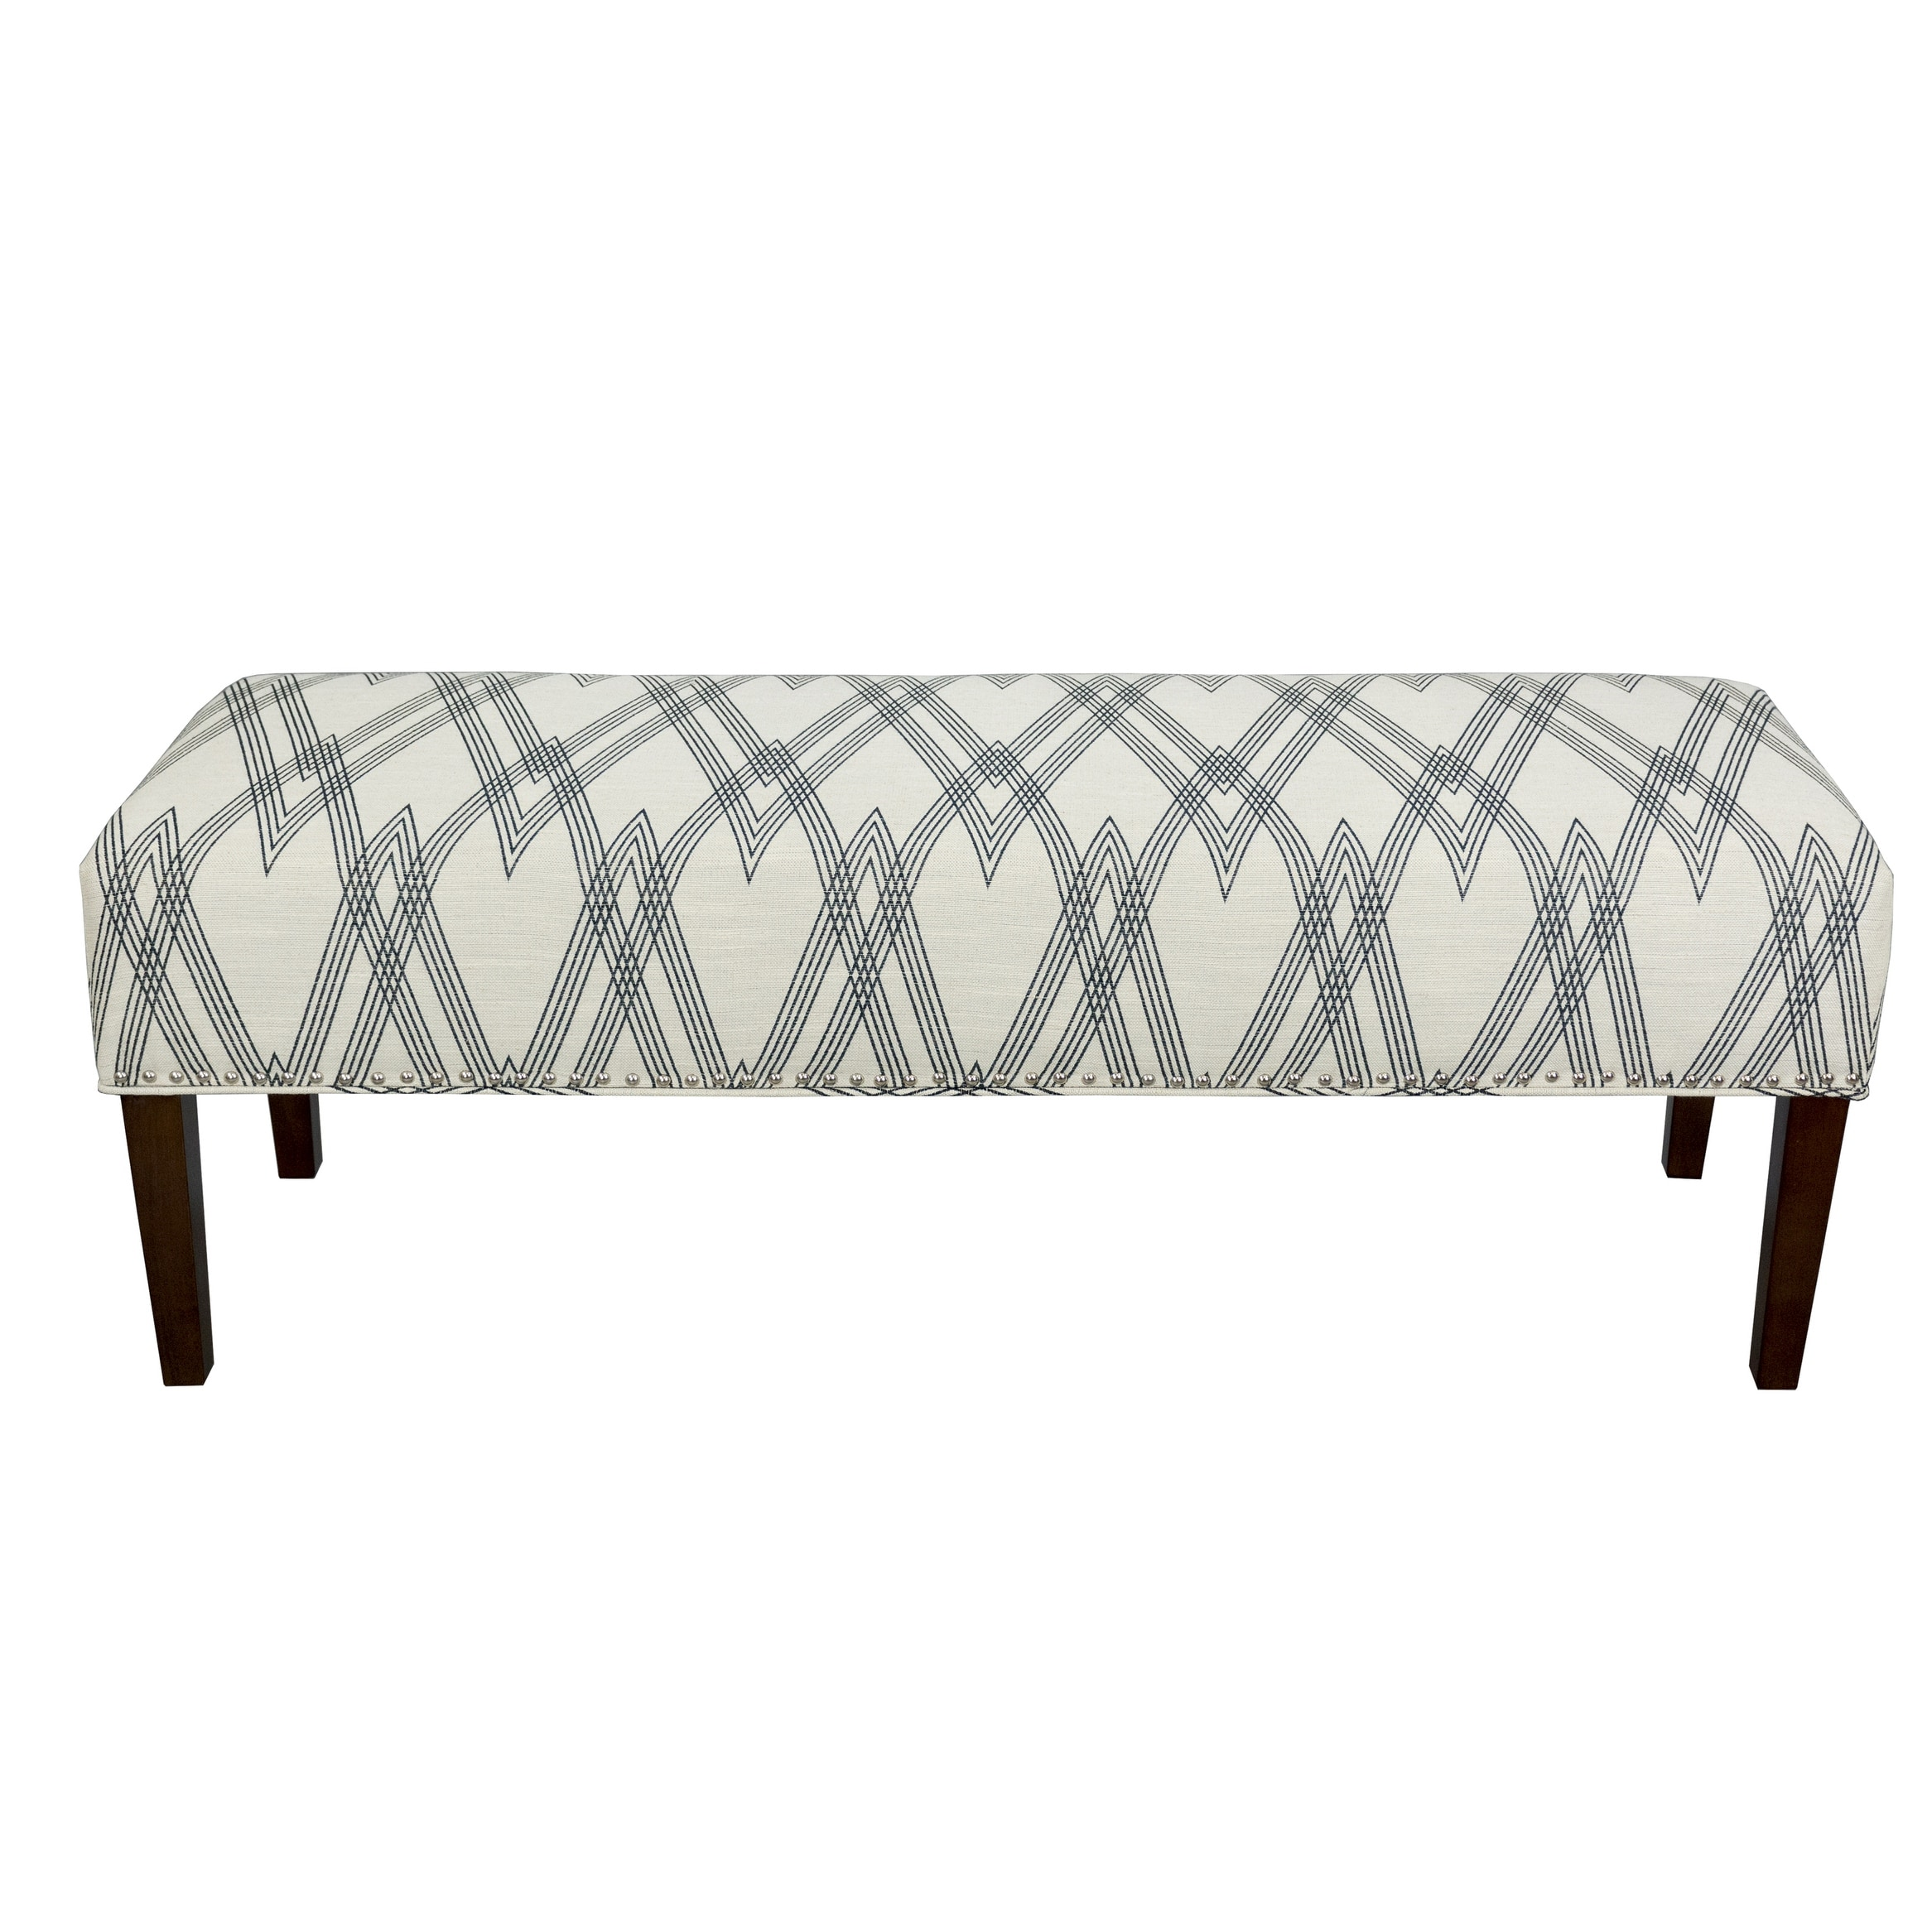 Picture of: Shop Black Friday Deals On Farmhouse Black White Upholstered Living Room Bench On Sale Overstock 31516722